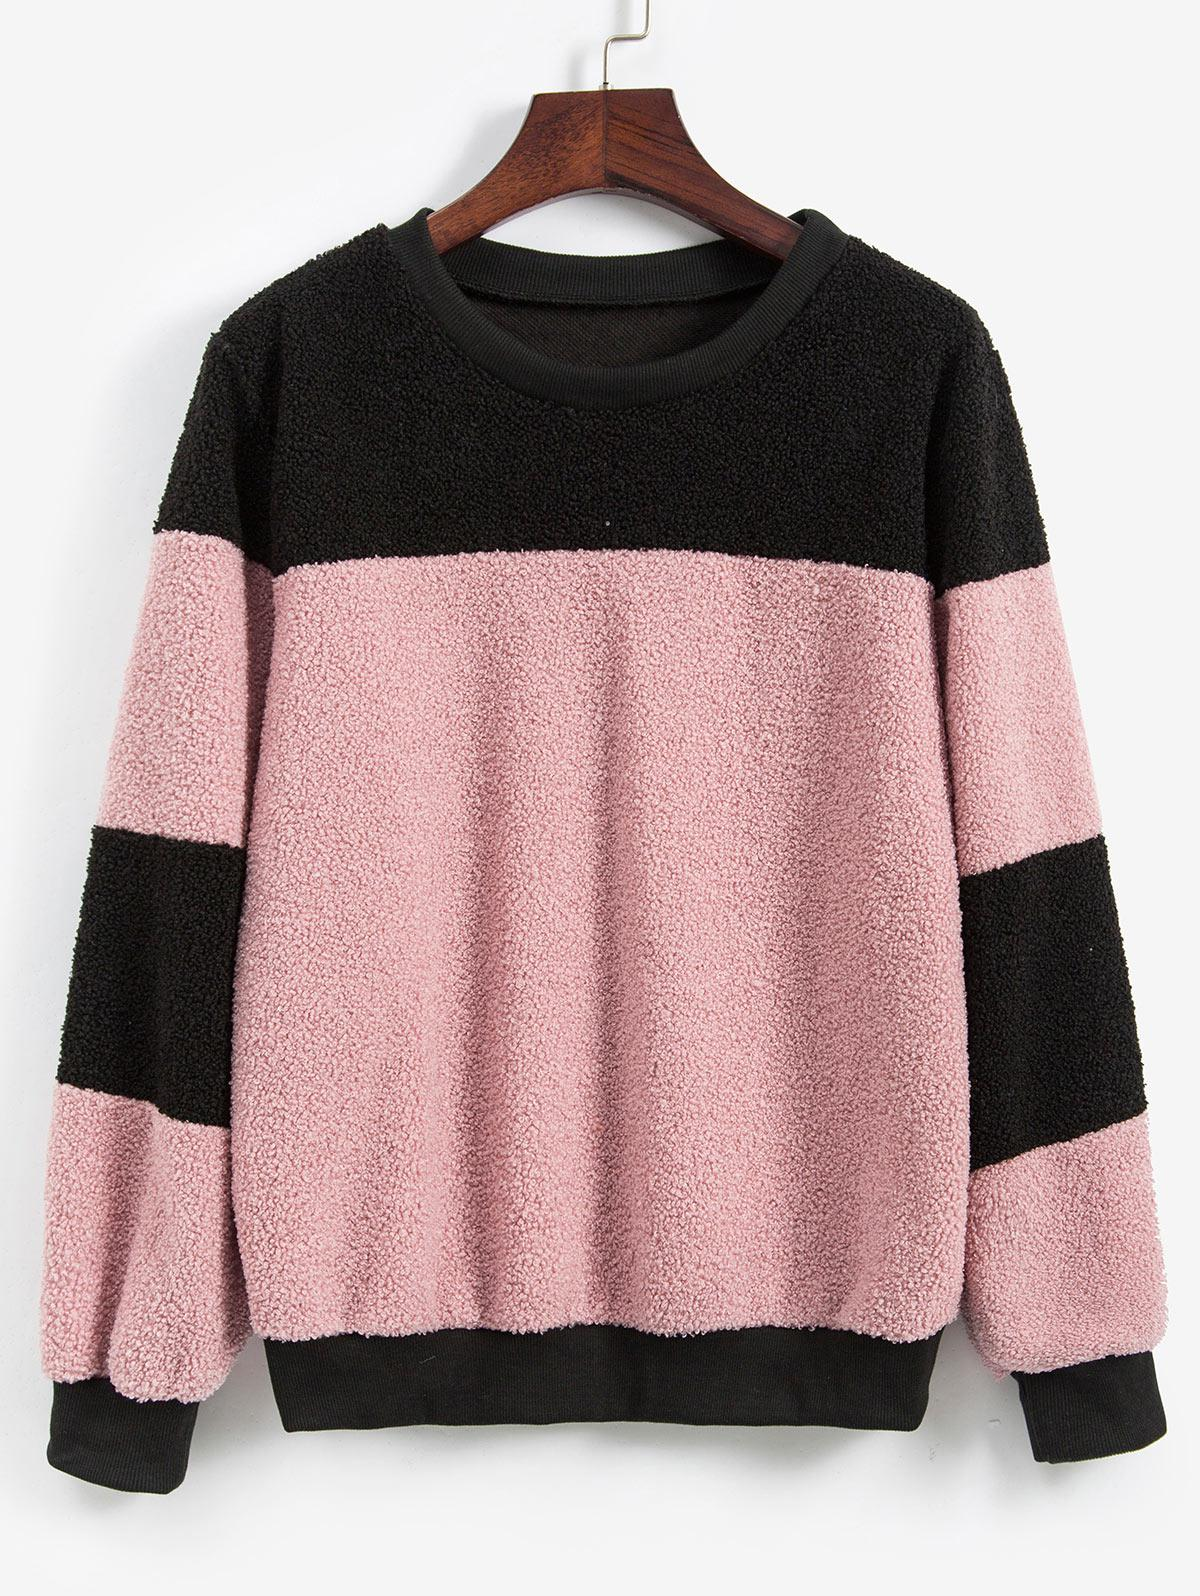 Two Tone Fluffy Teddy Pullover Sweatshirt